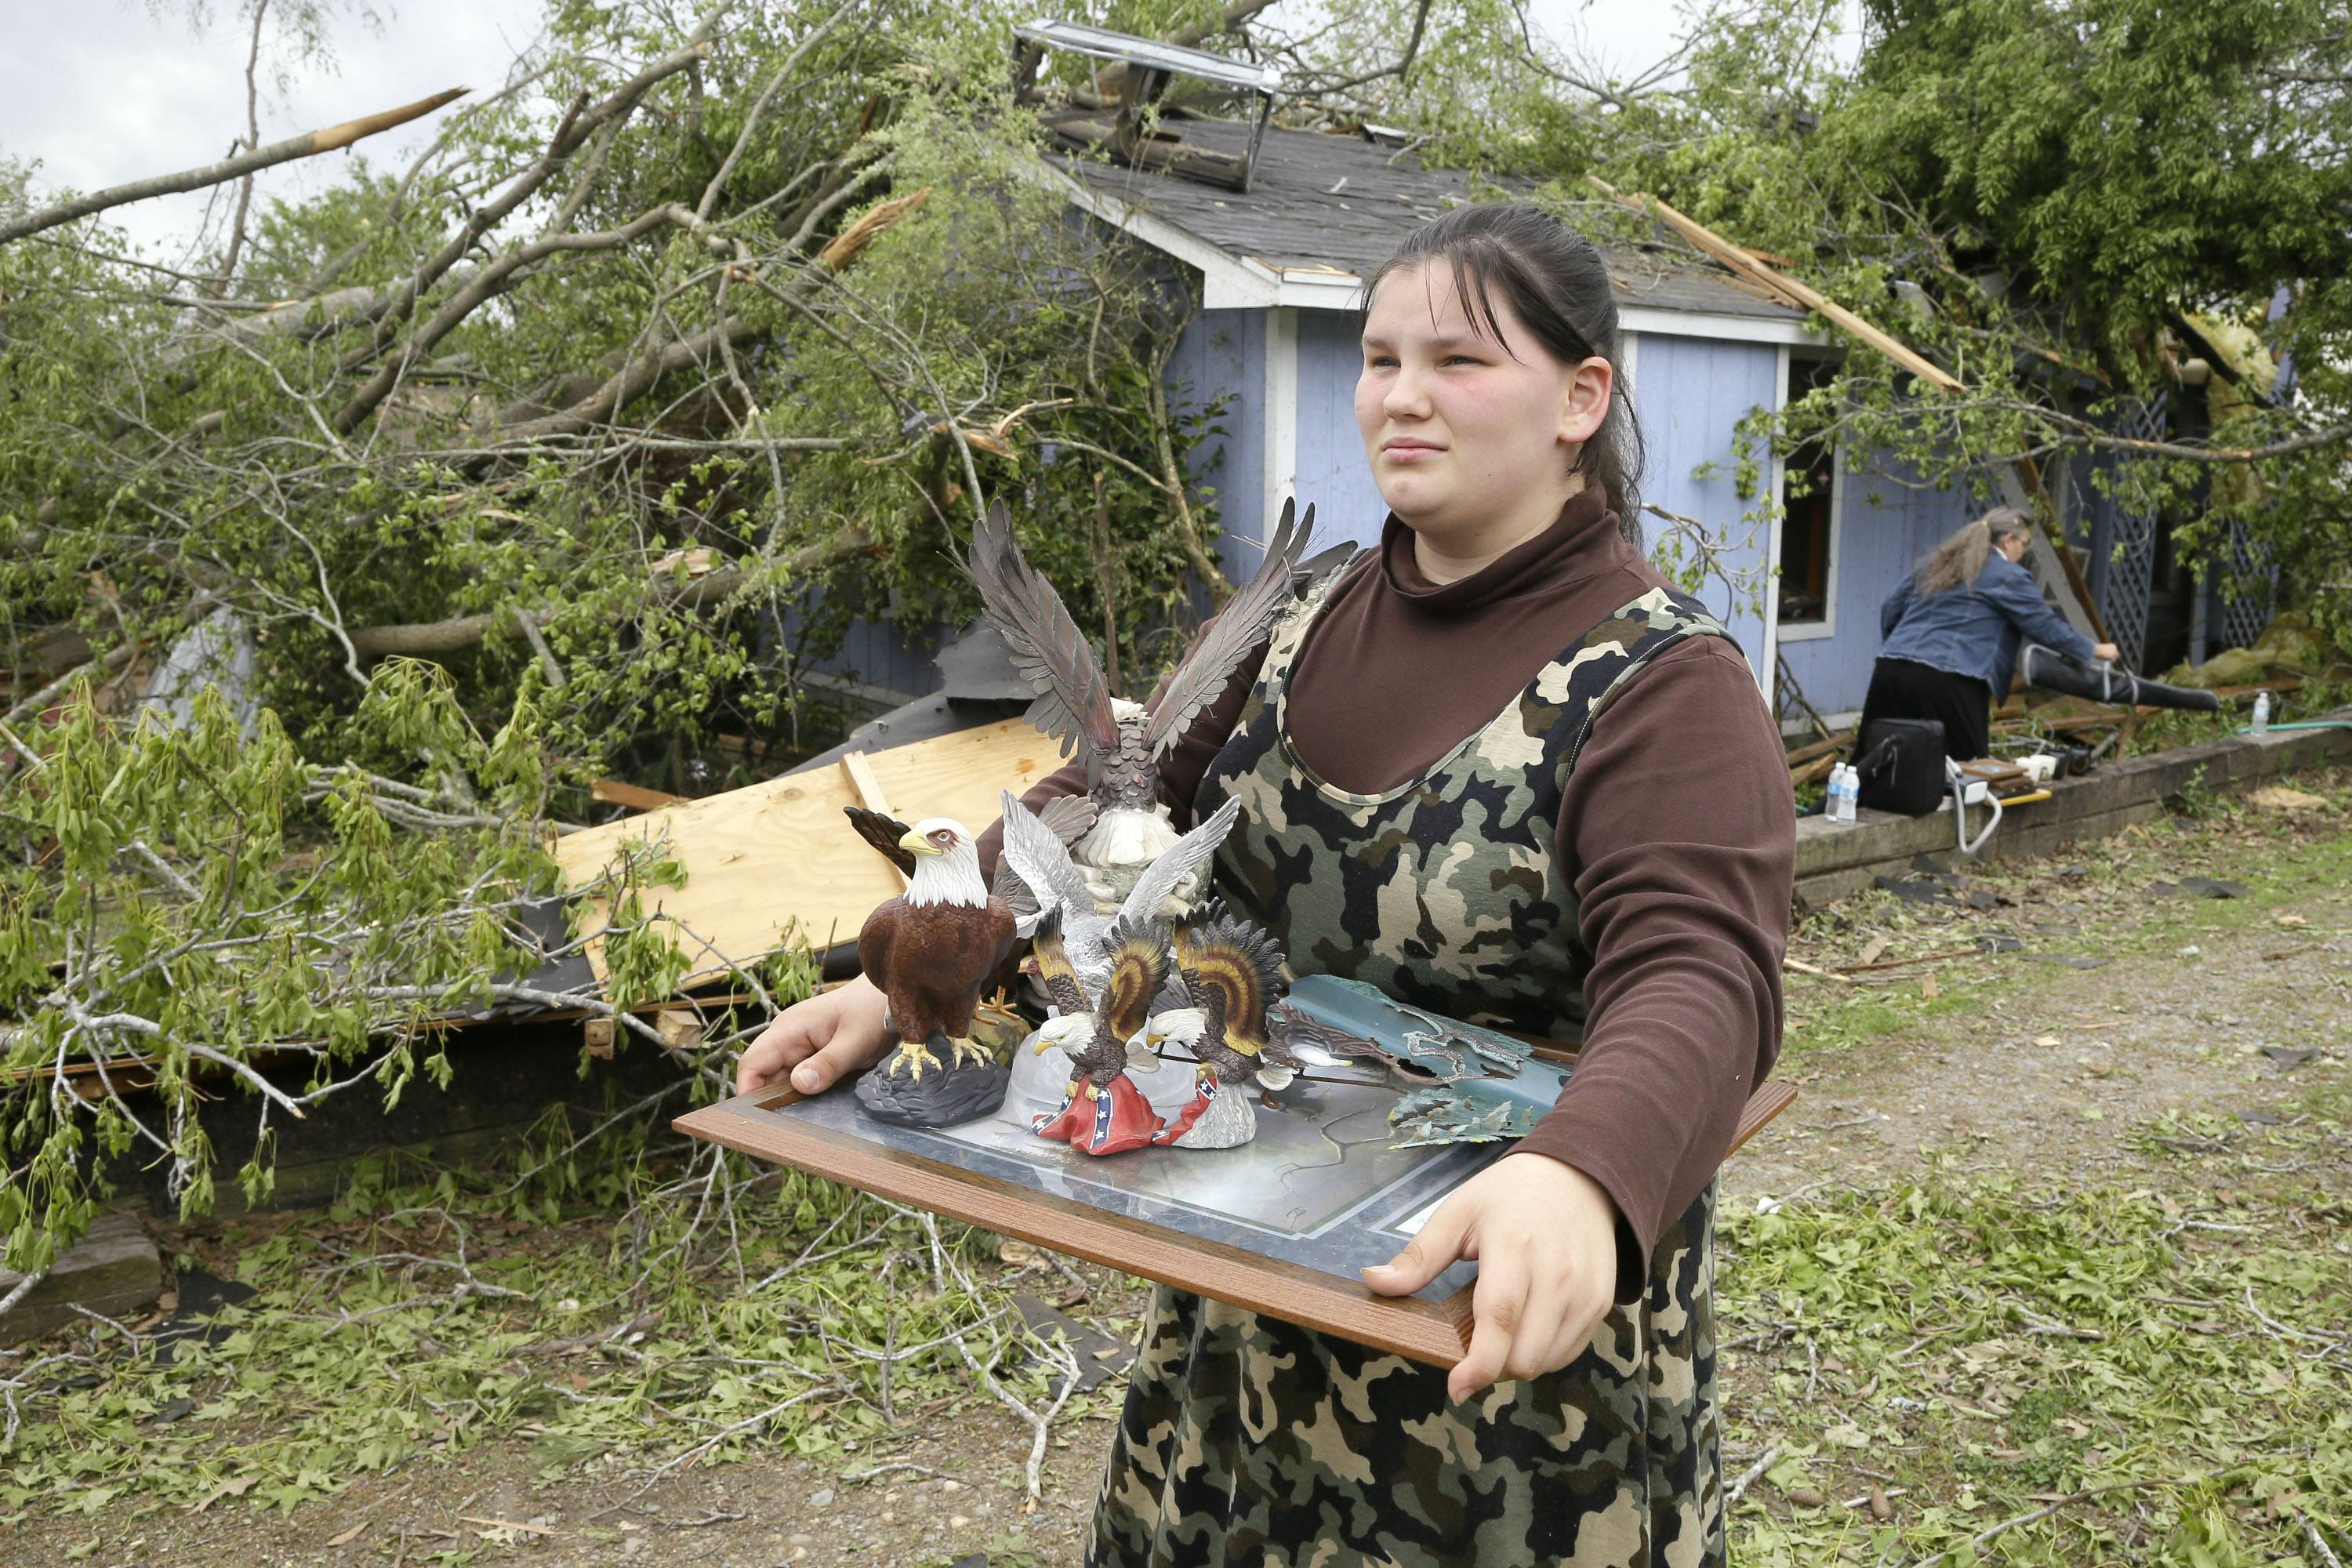 Rosie Hollingshead, 15, carries her father's collection of eagle figurines from her tornado-damaged home in Mayflower, Ark., Tuesday, April 29, 2014.